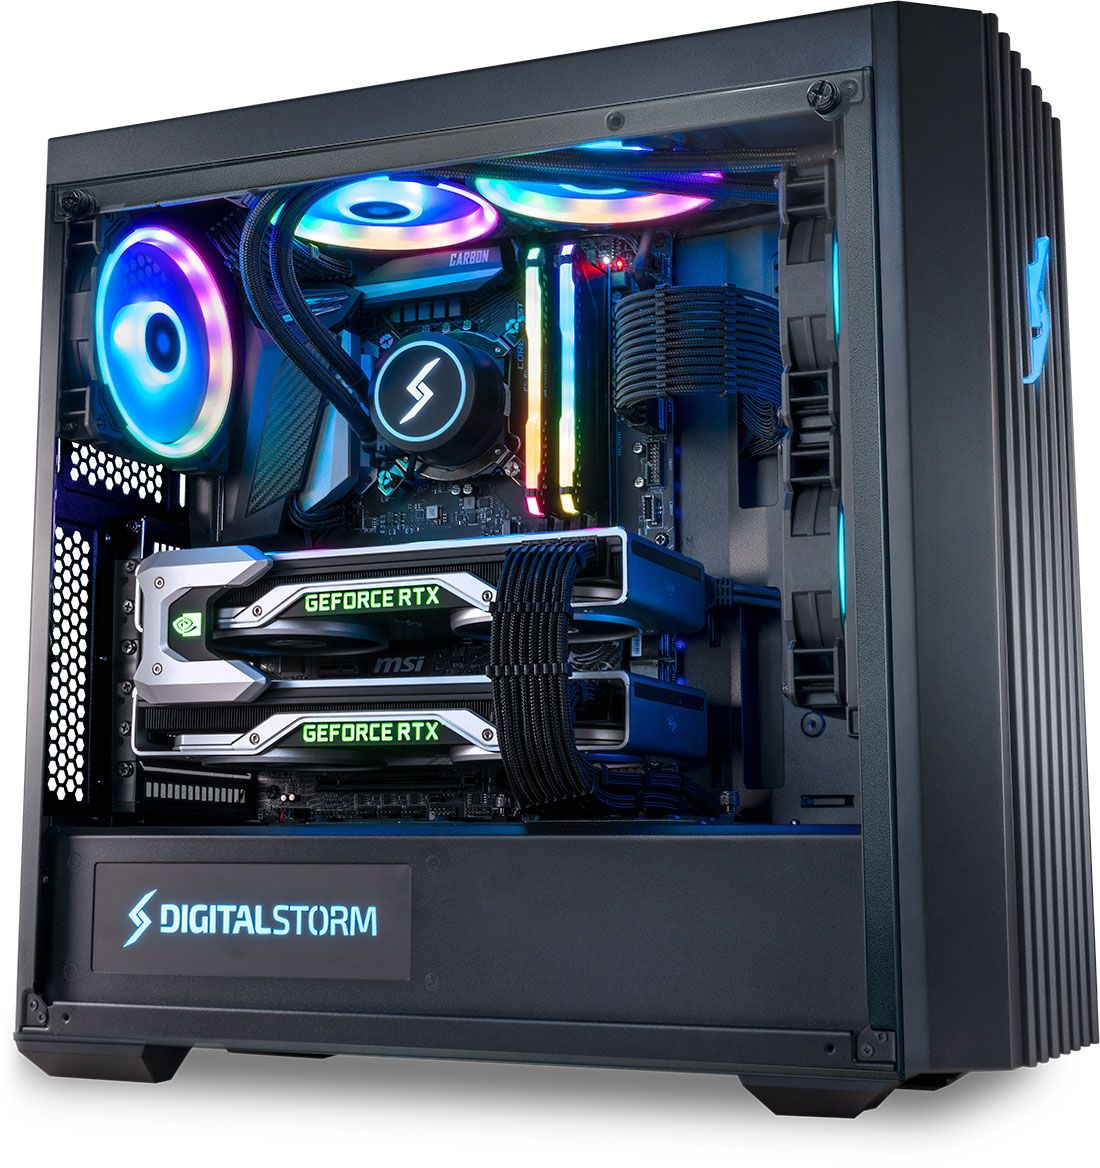 Lynx Gaming Pc By Digital Storm In 2020 Gaming Pc Gaming Machine Computer Gaming Room